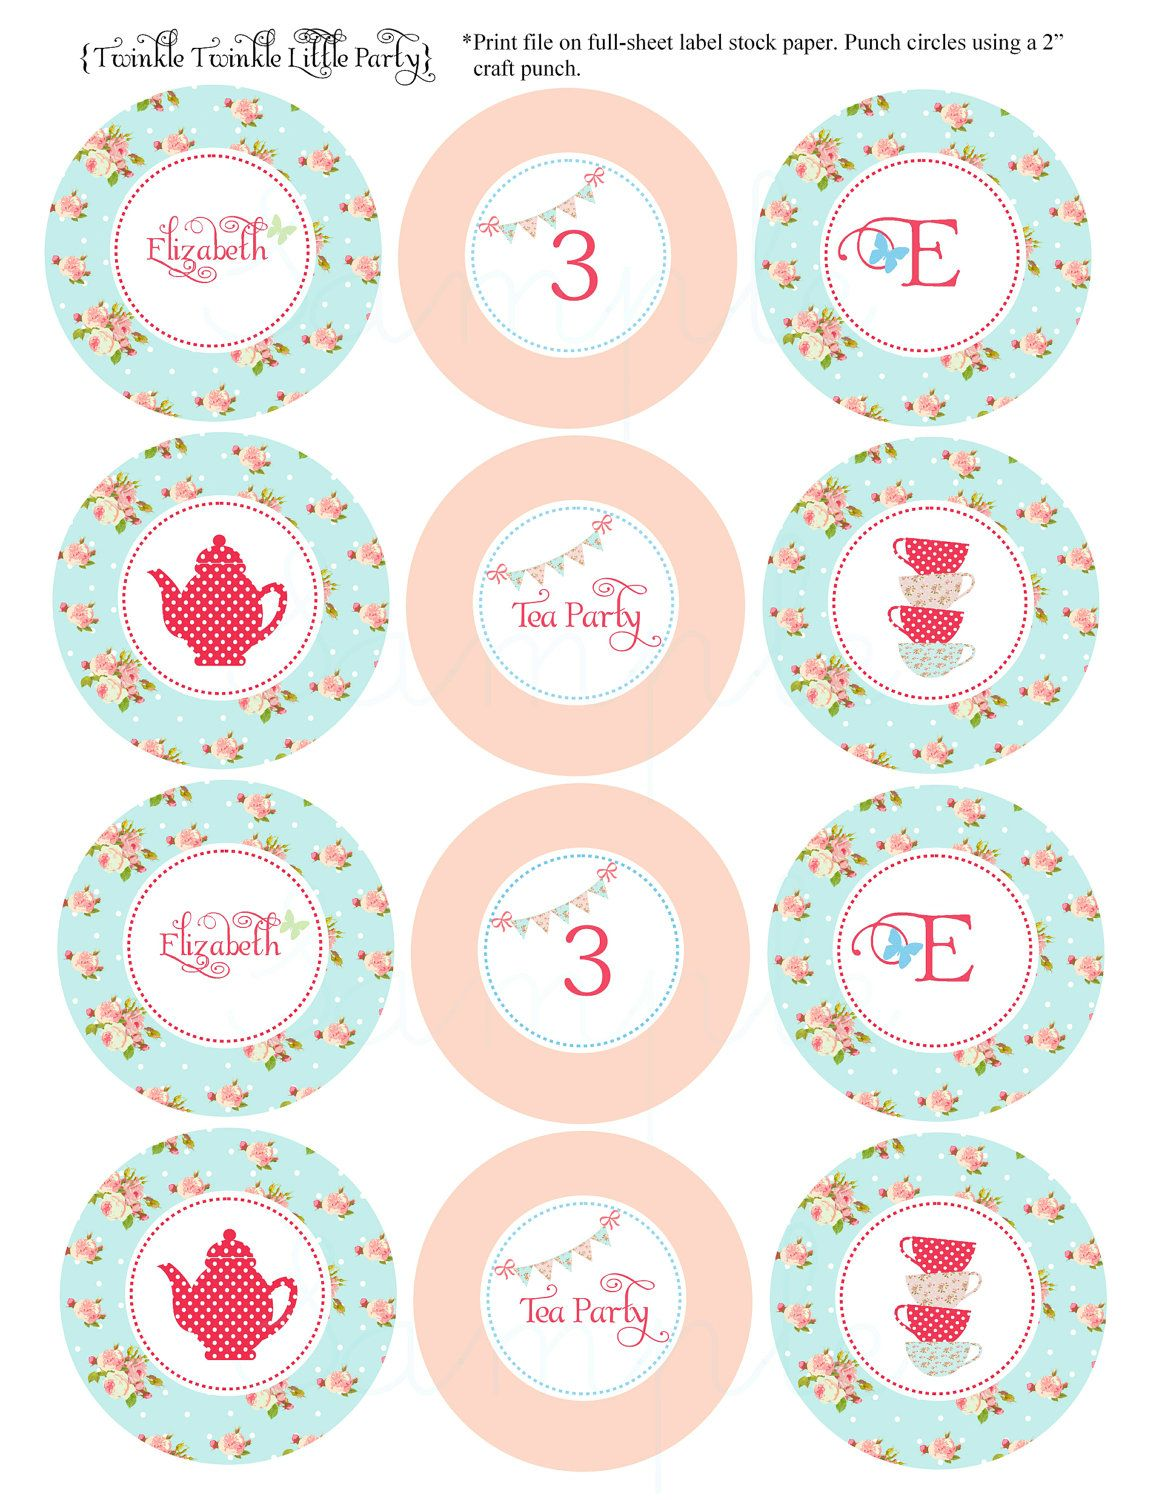 image relating to Tea Party Printable referred to as PRINTABLE Shaby Stylish Tea Occasion Cupcake Toppers Do-it-yourself